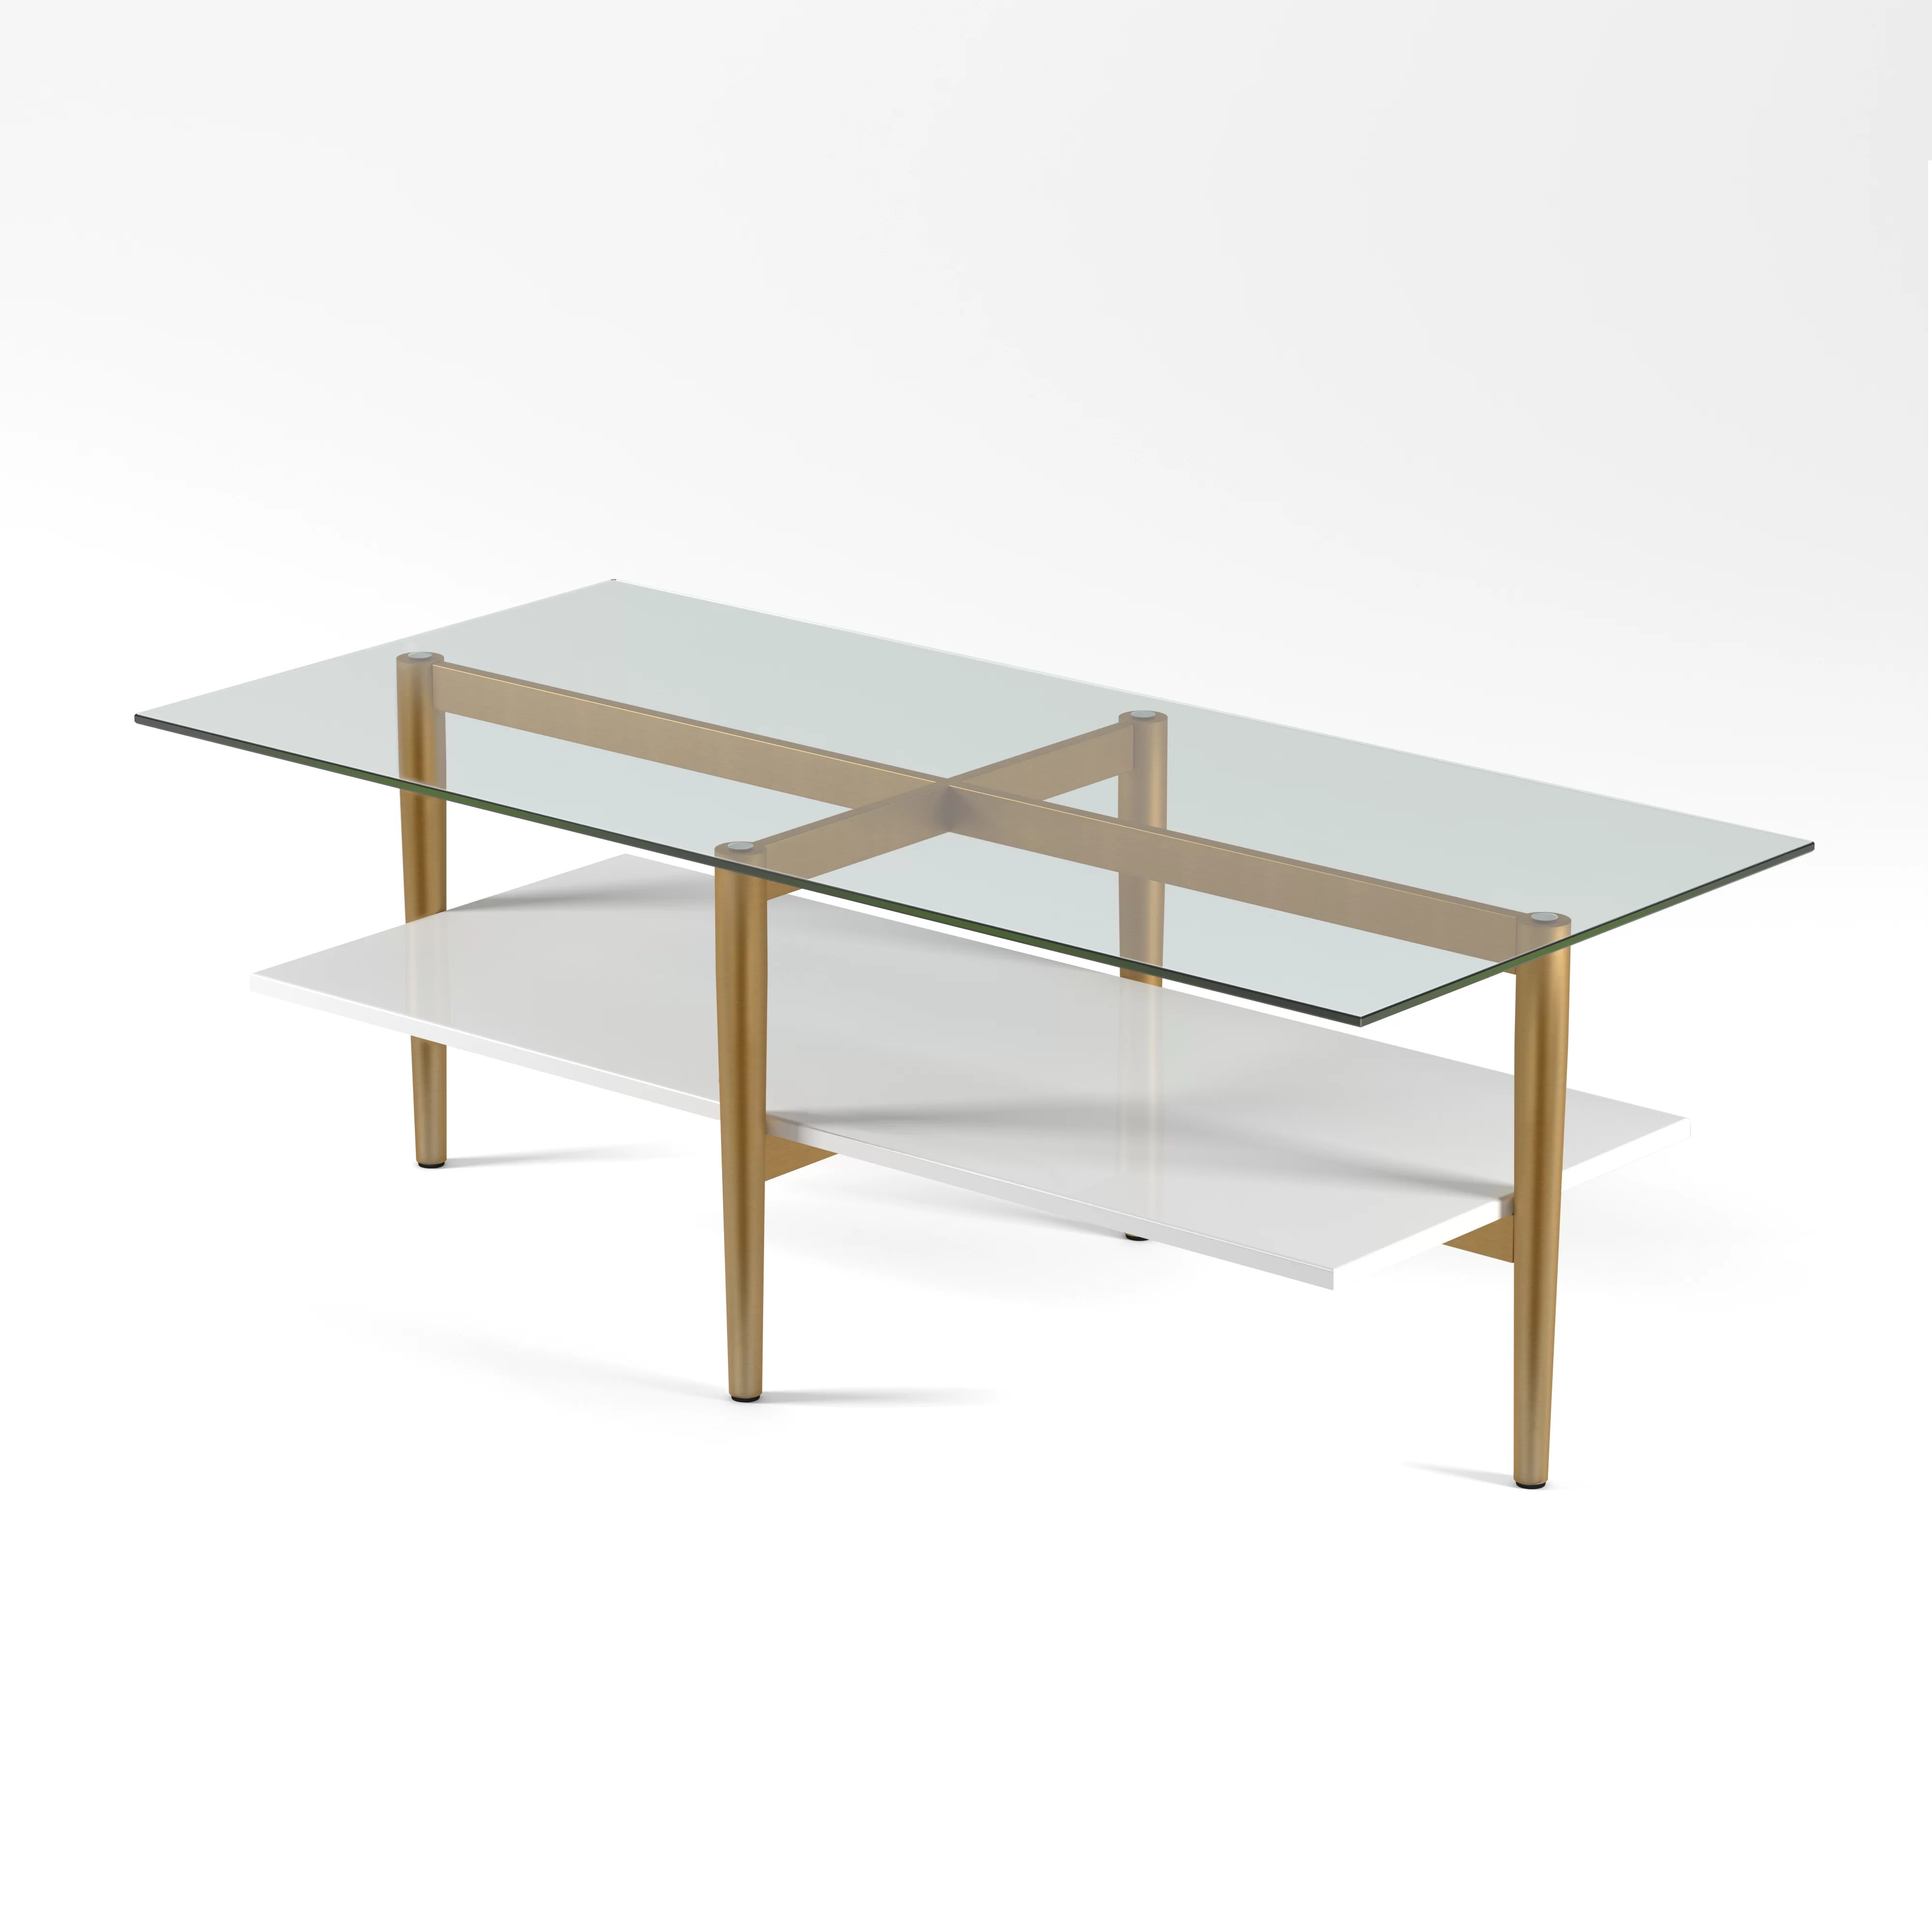 Location De Chaises Napoleon Saul Coffee Table Reviews Allmodern